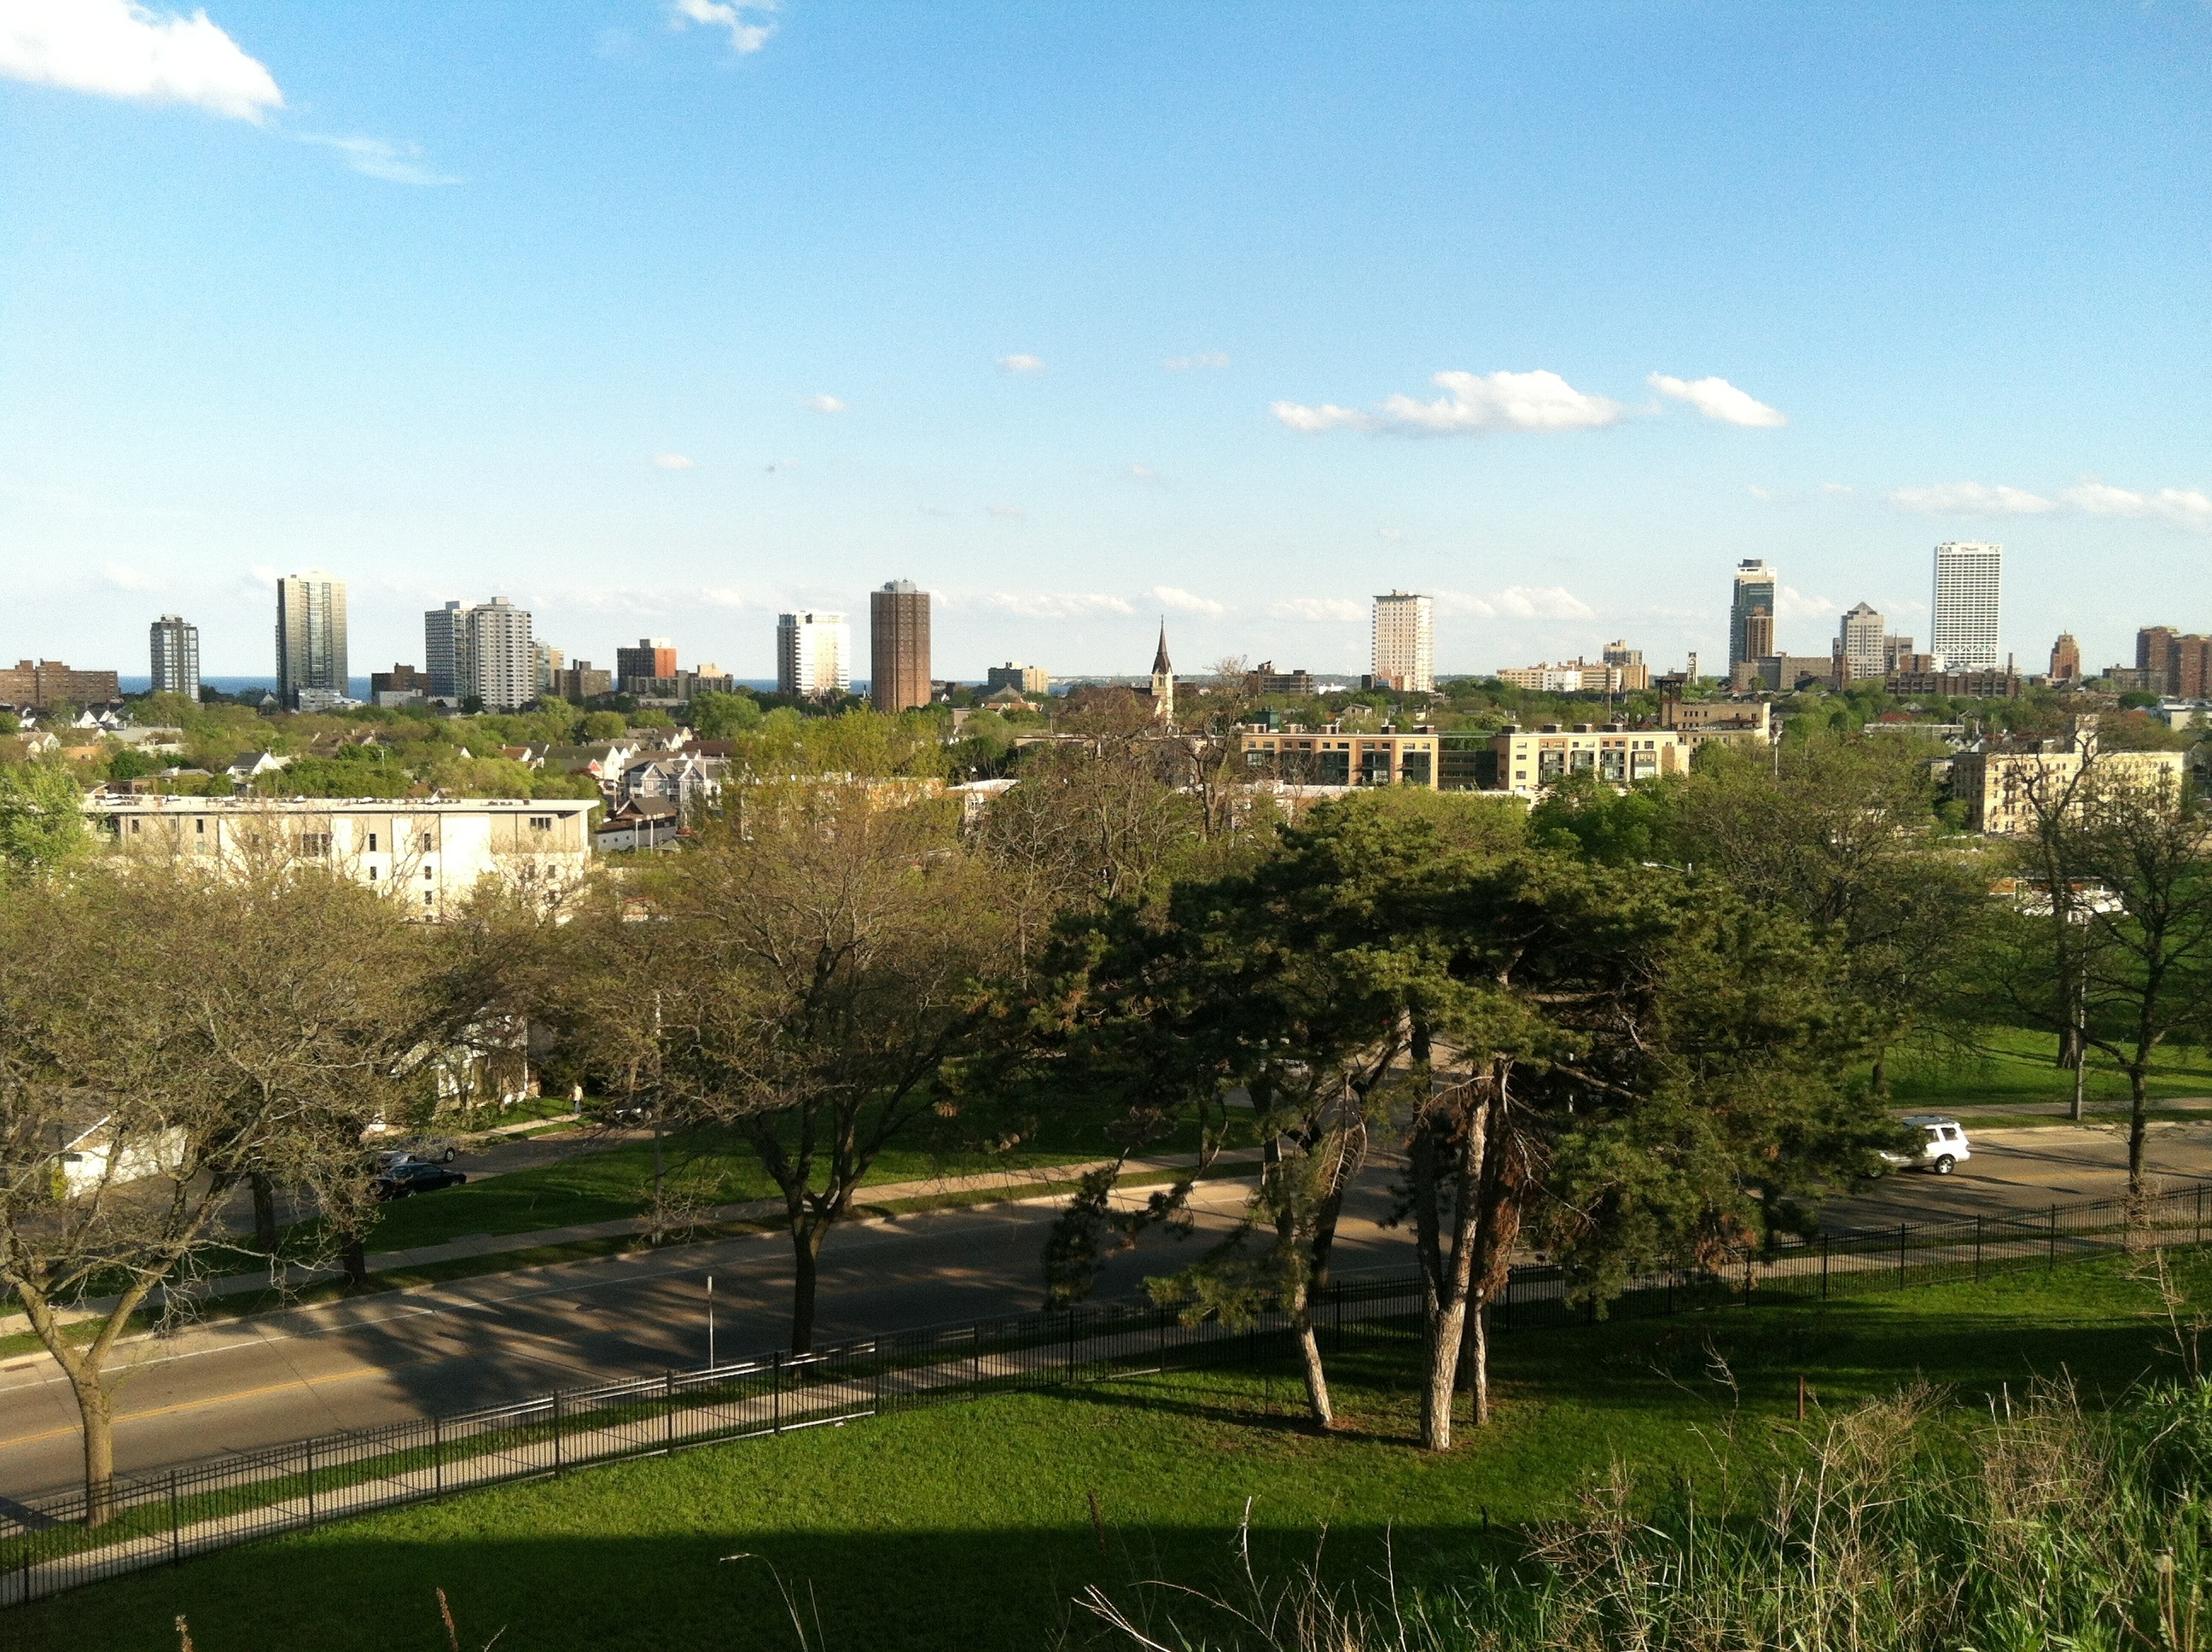 View of Milwaukee from the park